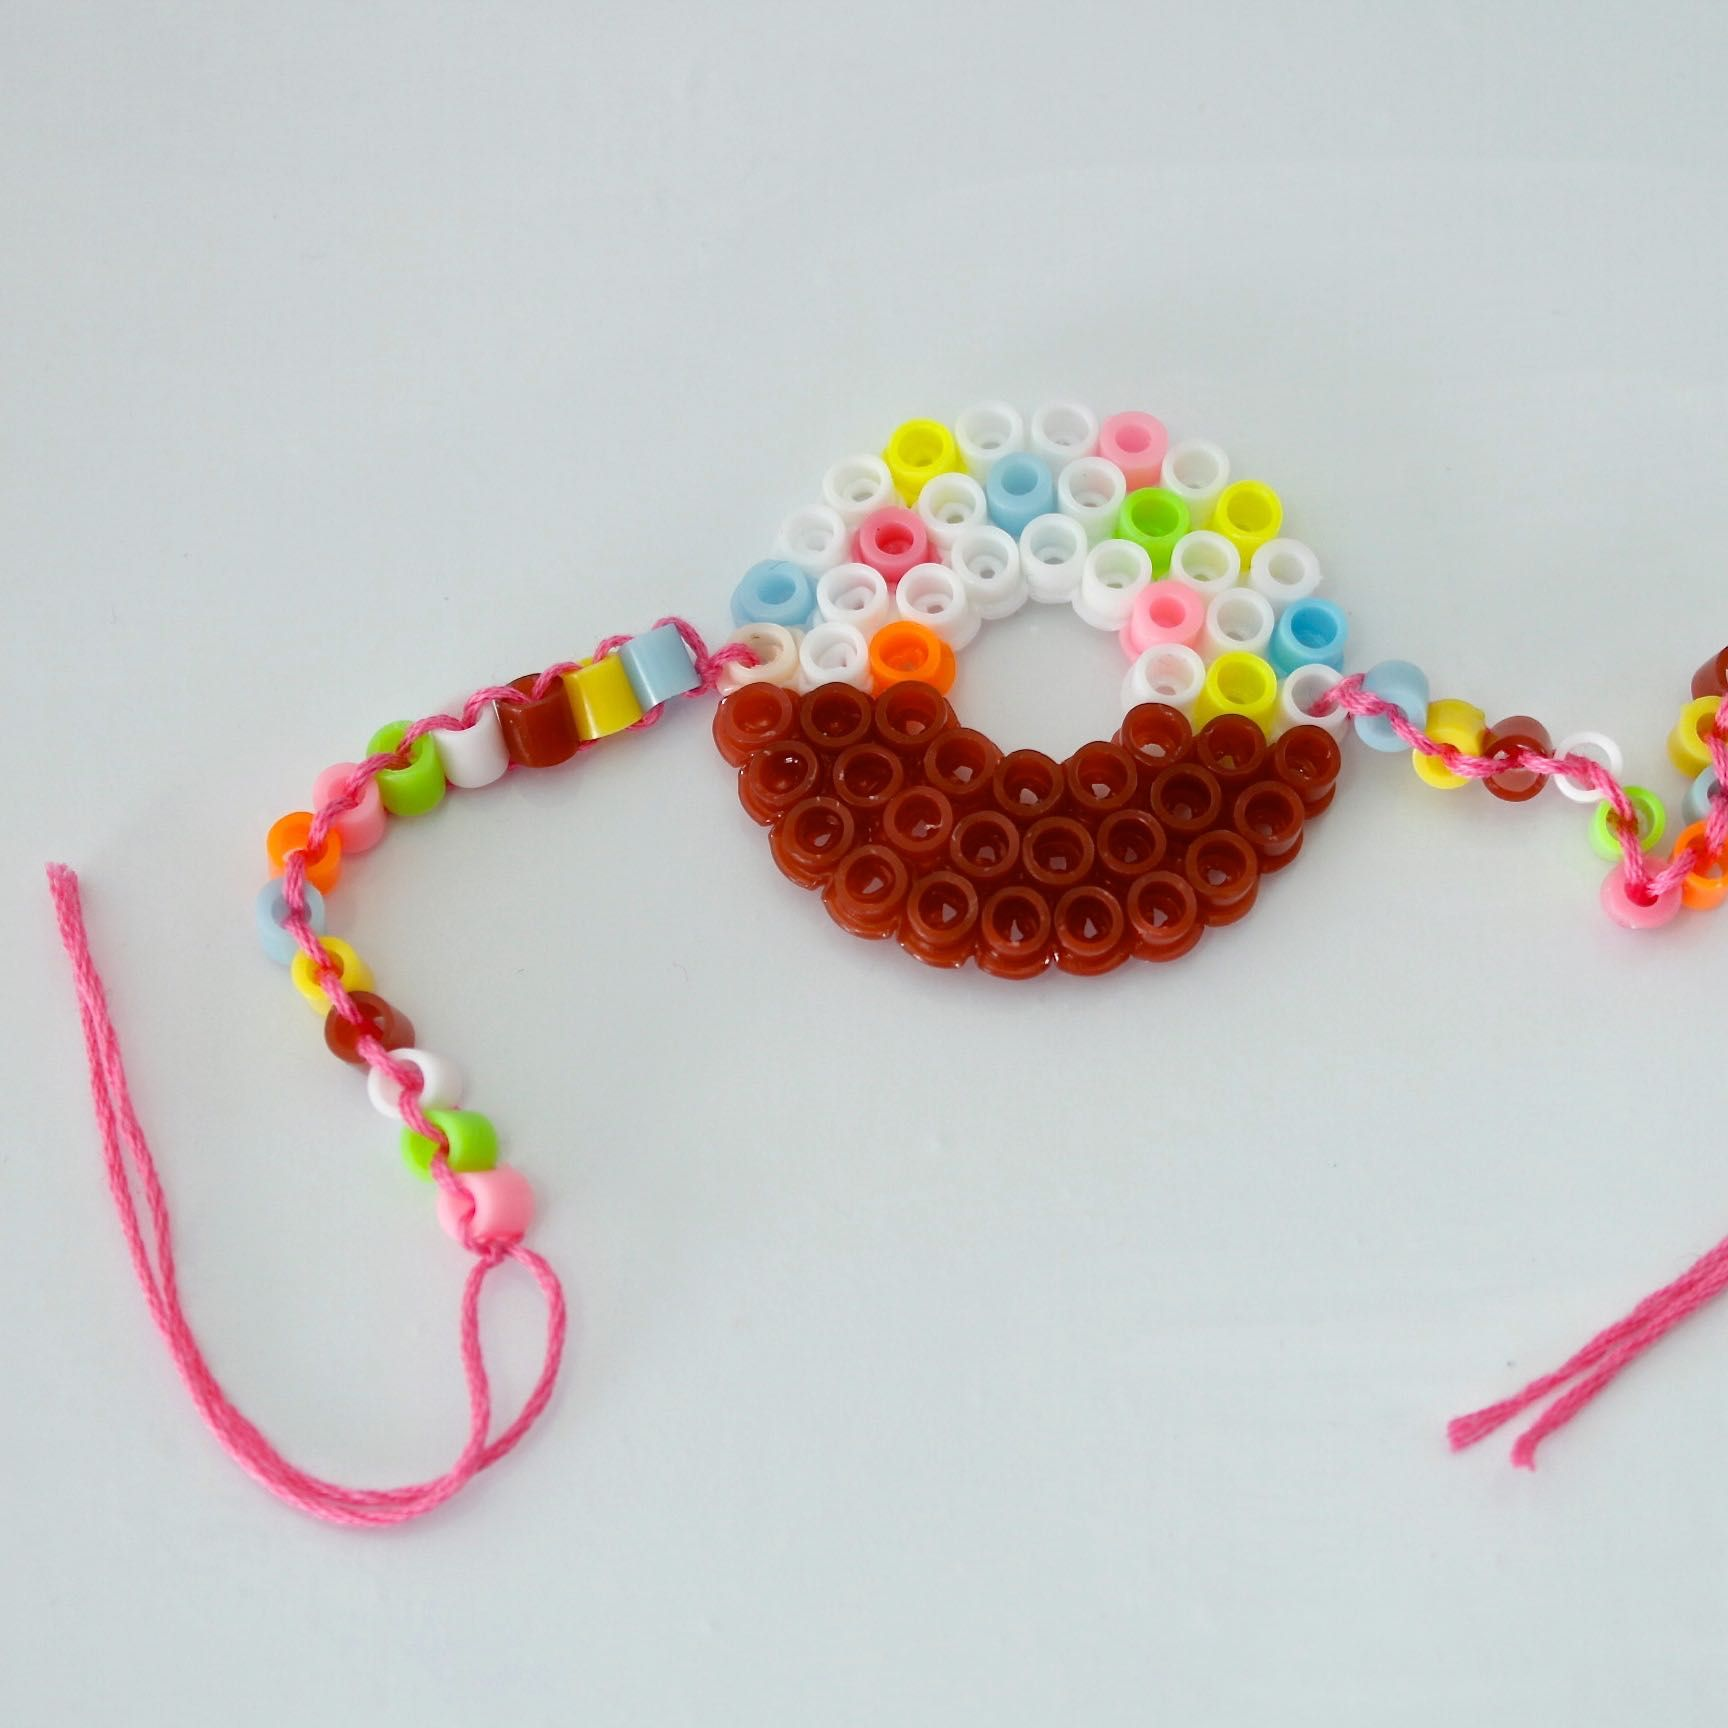 melting beads montage bracelet mini happy me hama bead perler craft